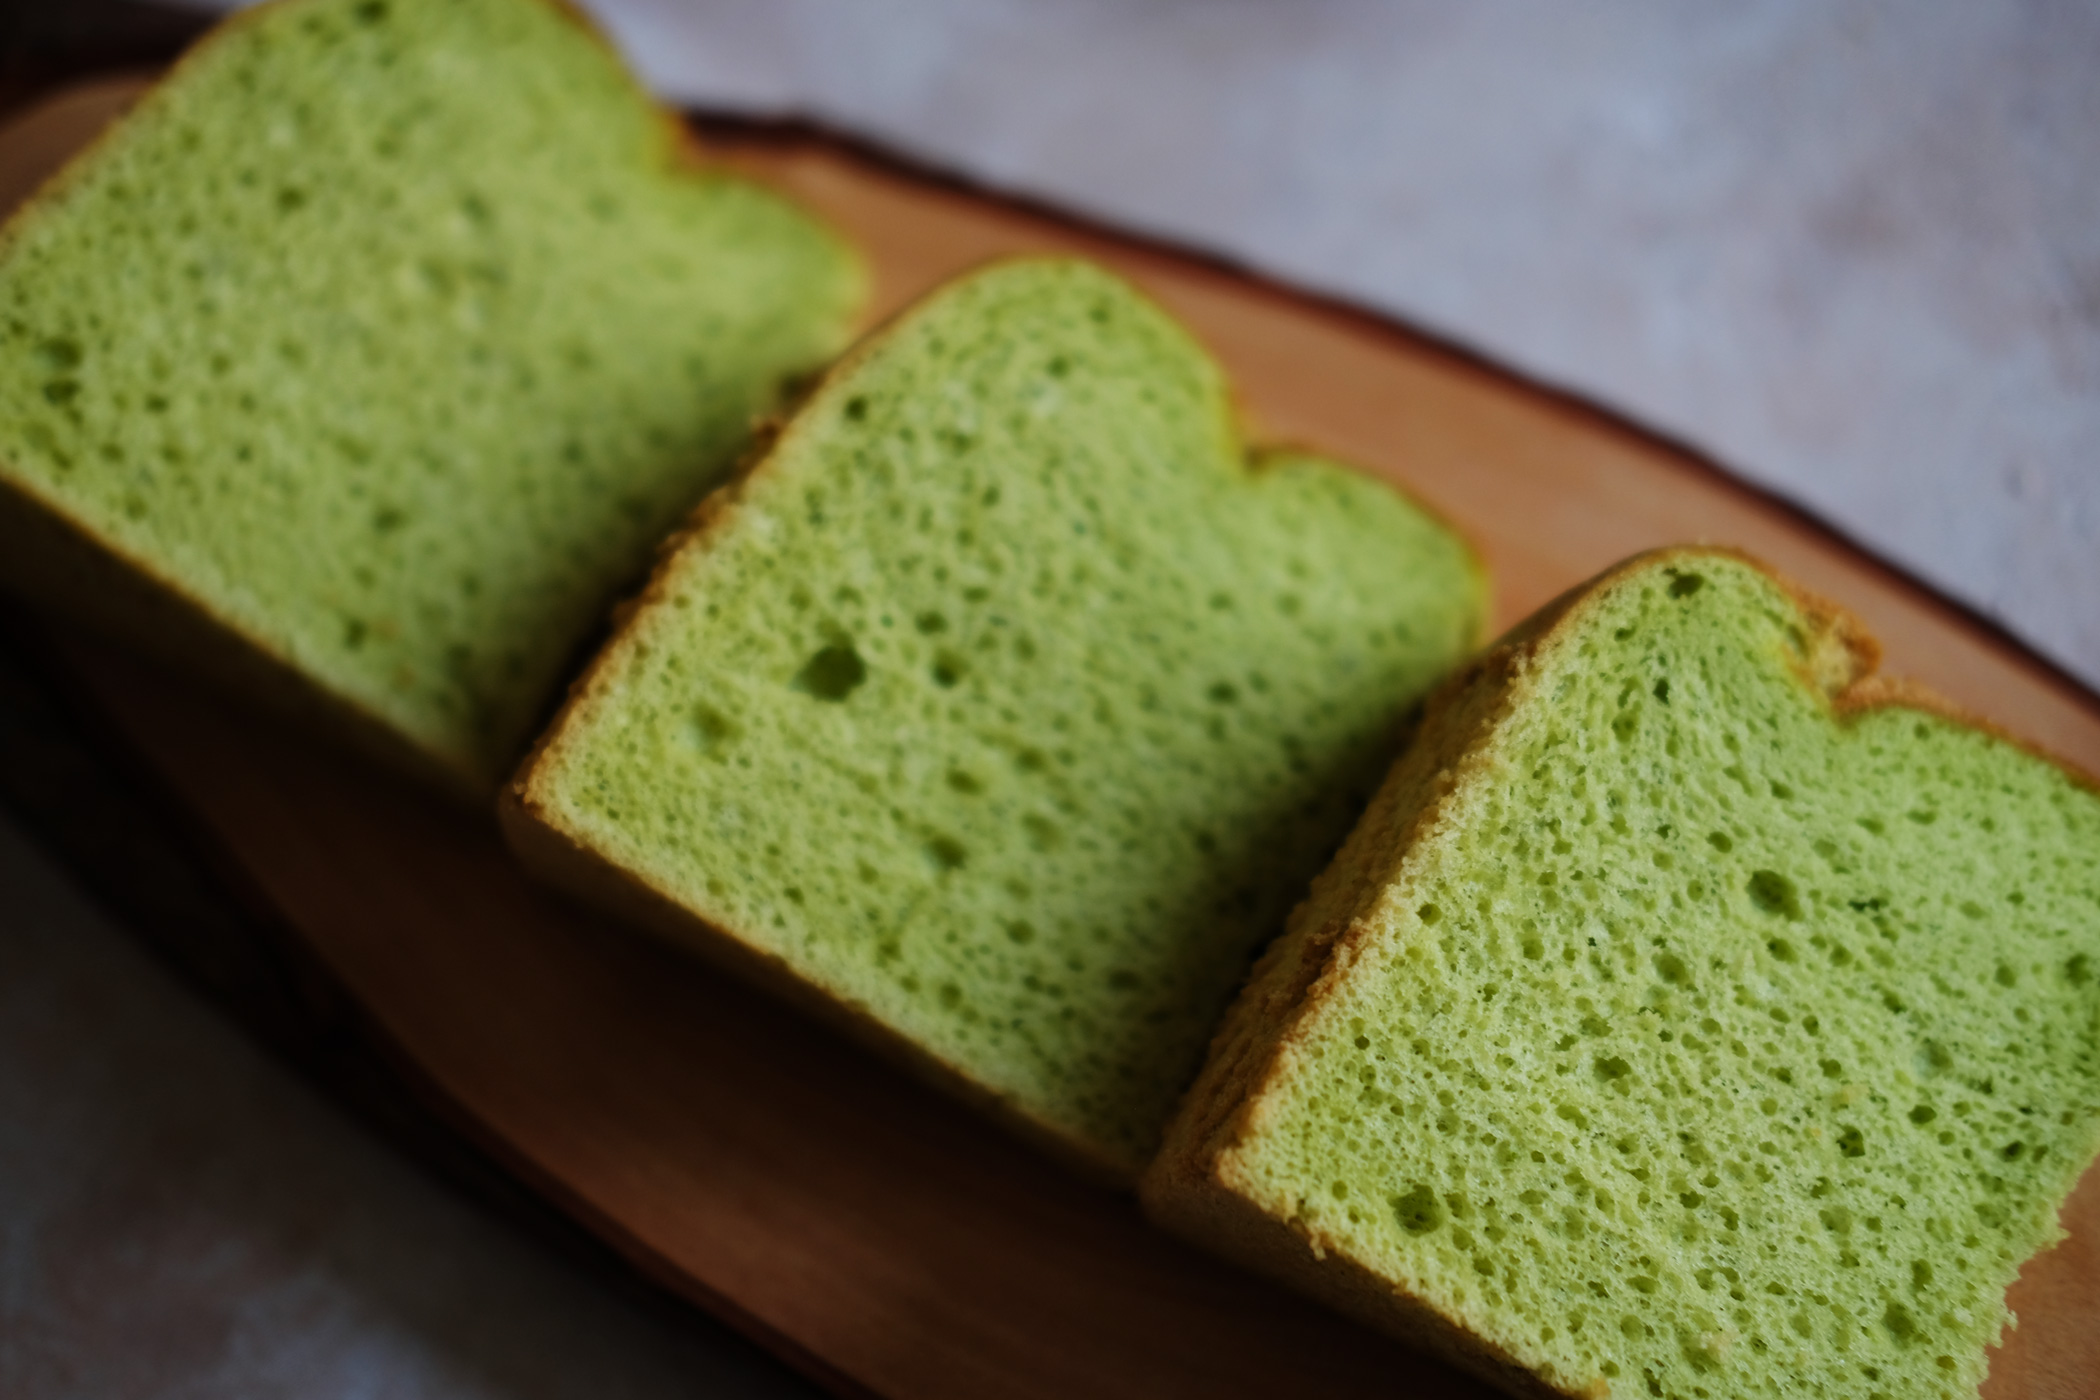 Deliciously green without artificial colouring and flavouring